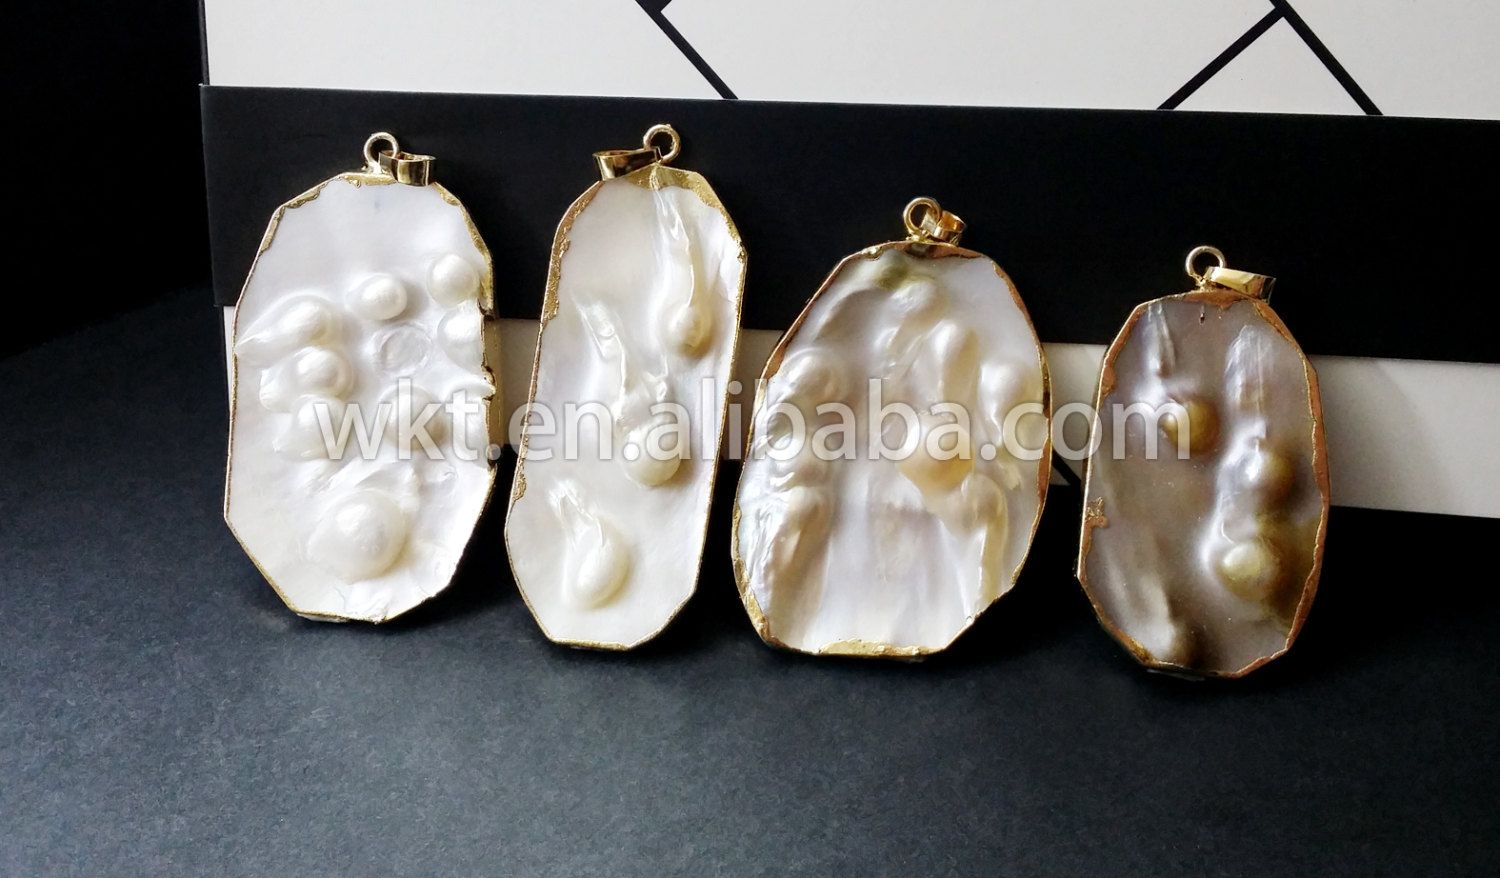 Wt p173 wholesale natural mother of pearl jewelrypendantvintage descubre ideas sobre madreperla aloadofball Image collections